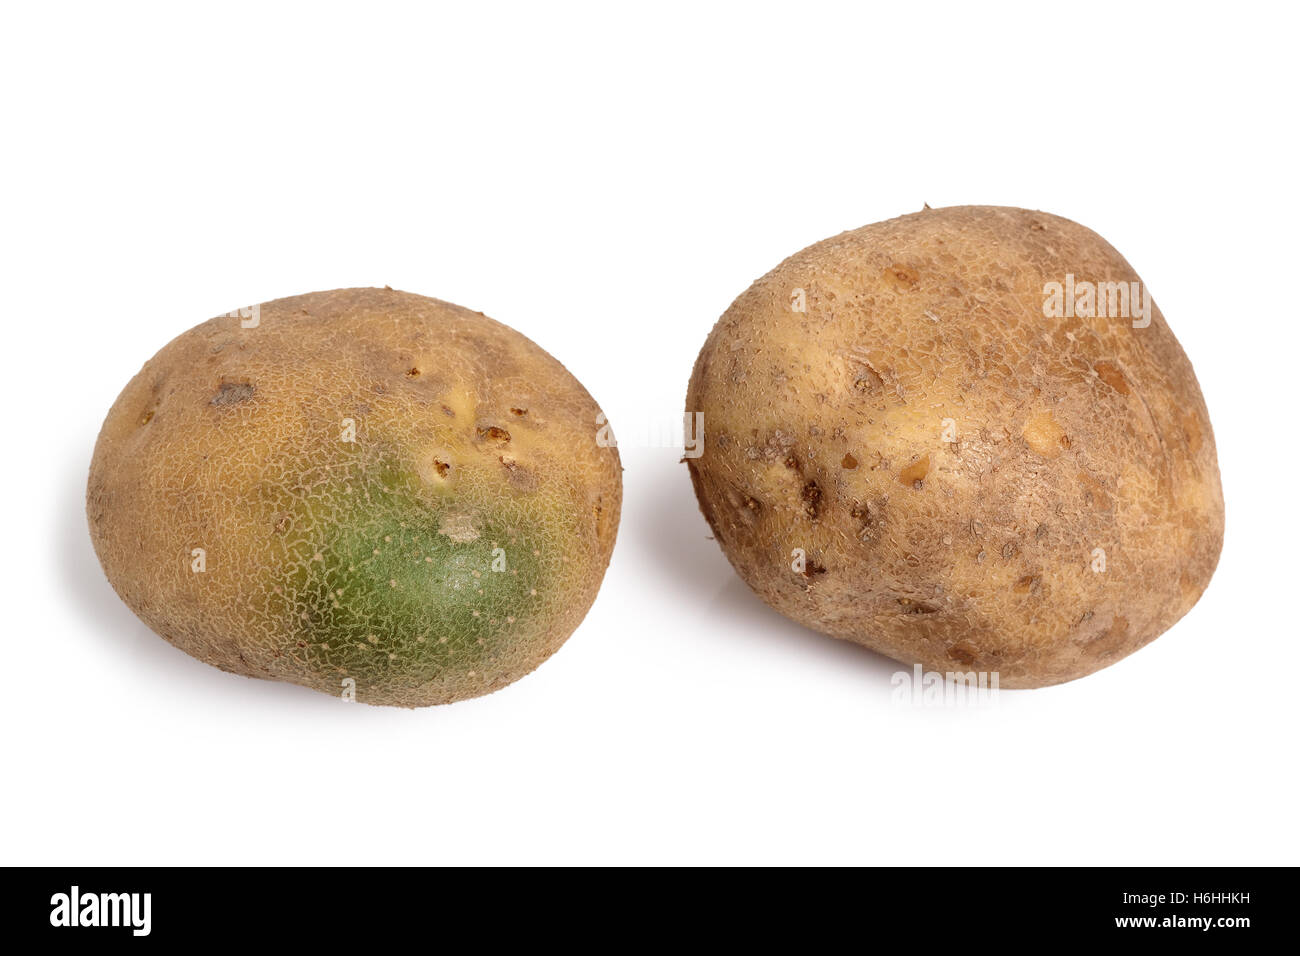 Raw unpeeled potato with green skin  Isolated on a white